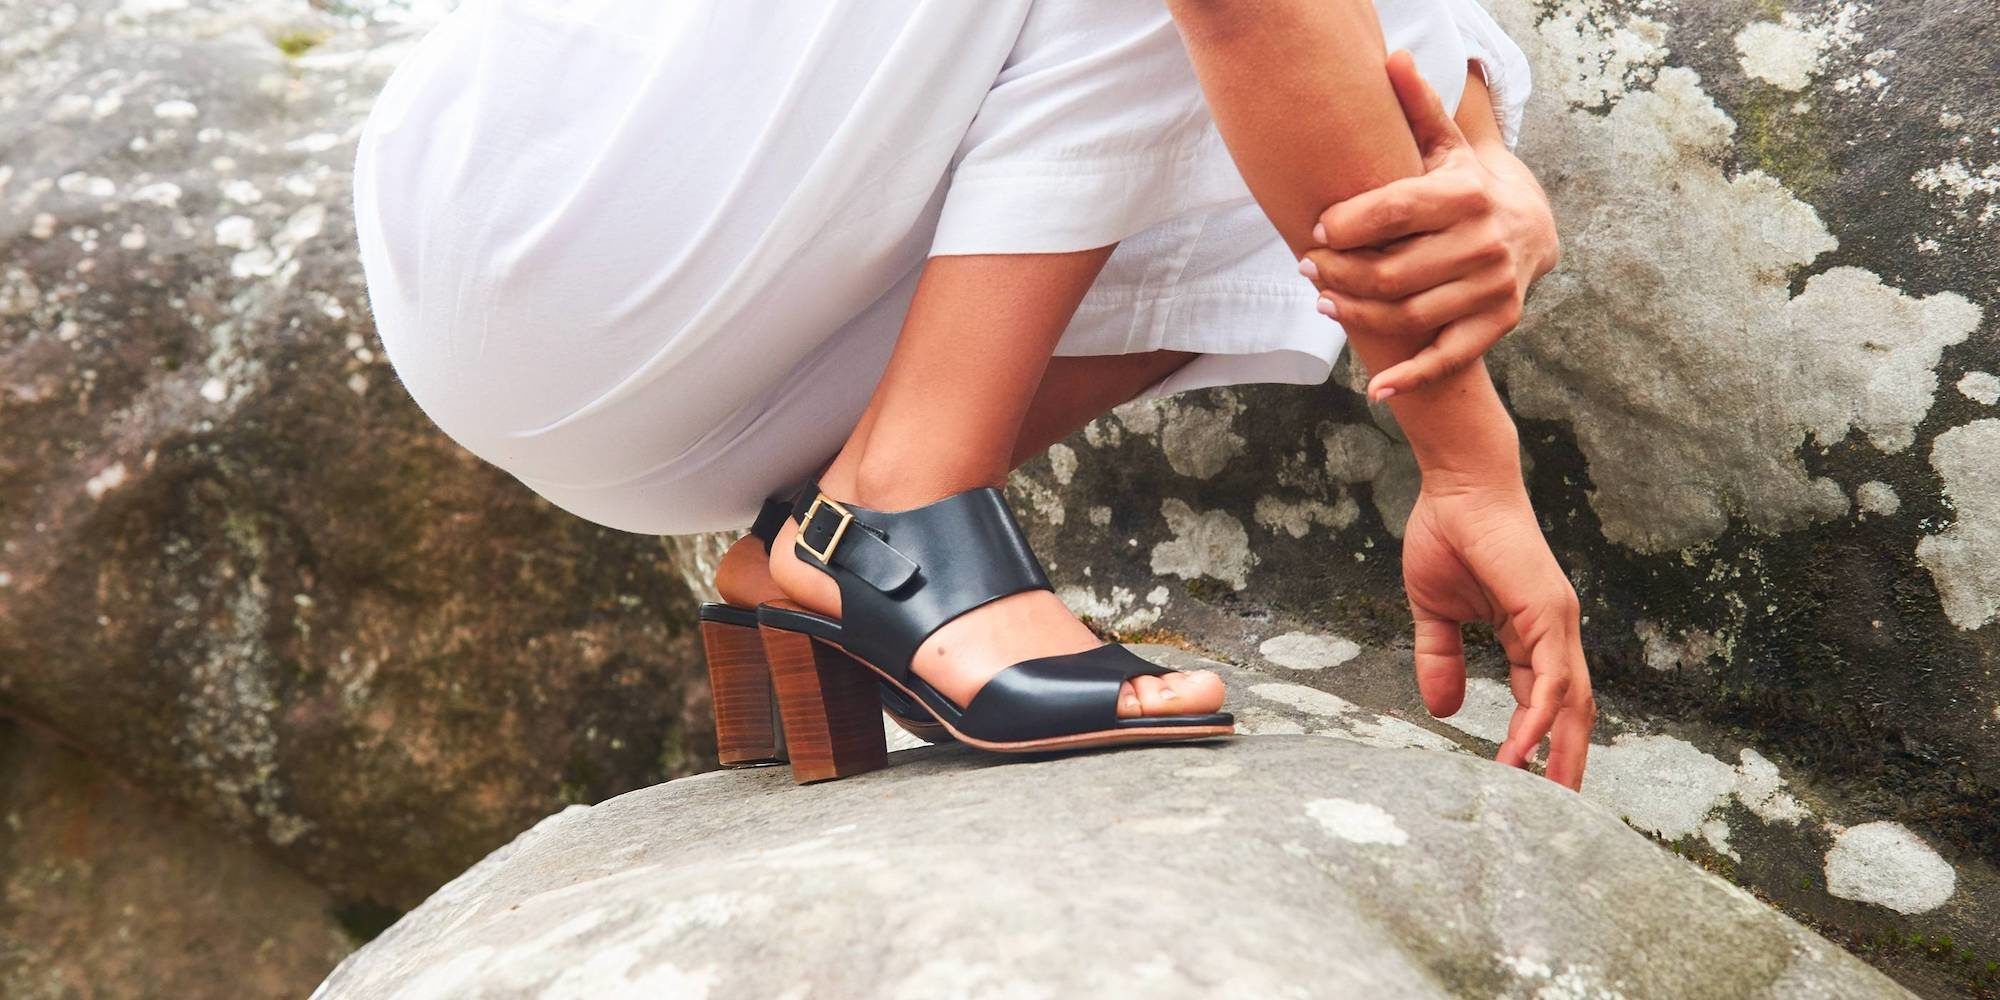 High-heeled black leather sandals by Anthology Paris worn by a girl wearing white trousers and crouching on a rock.